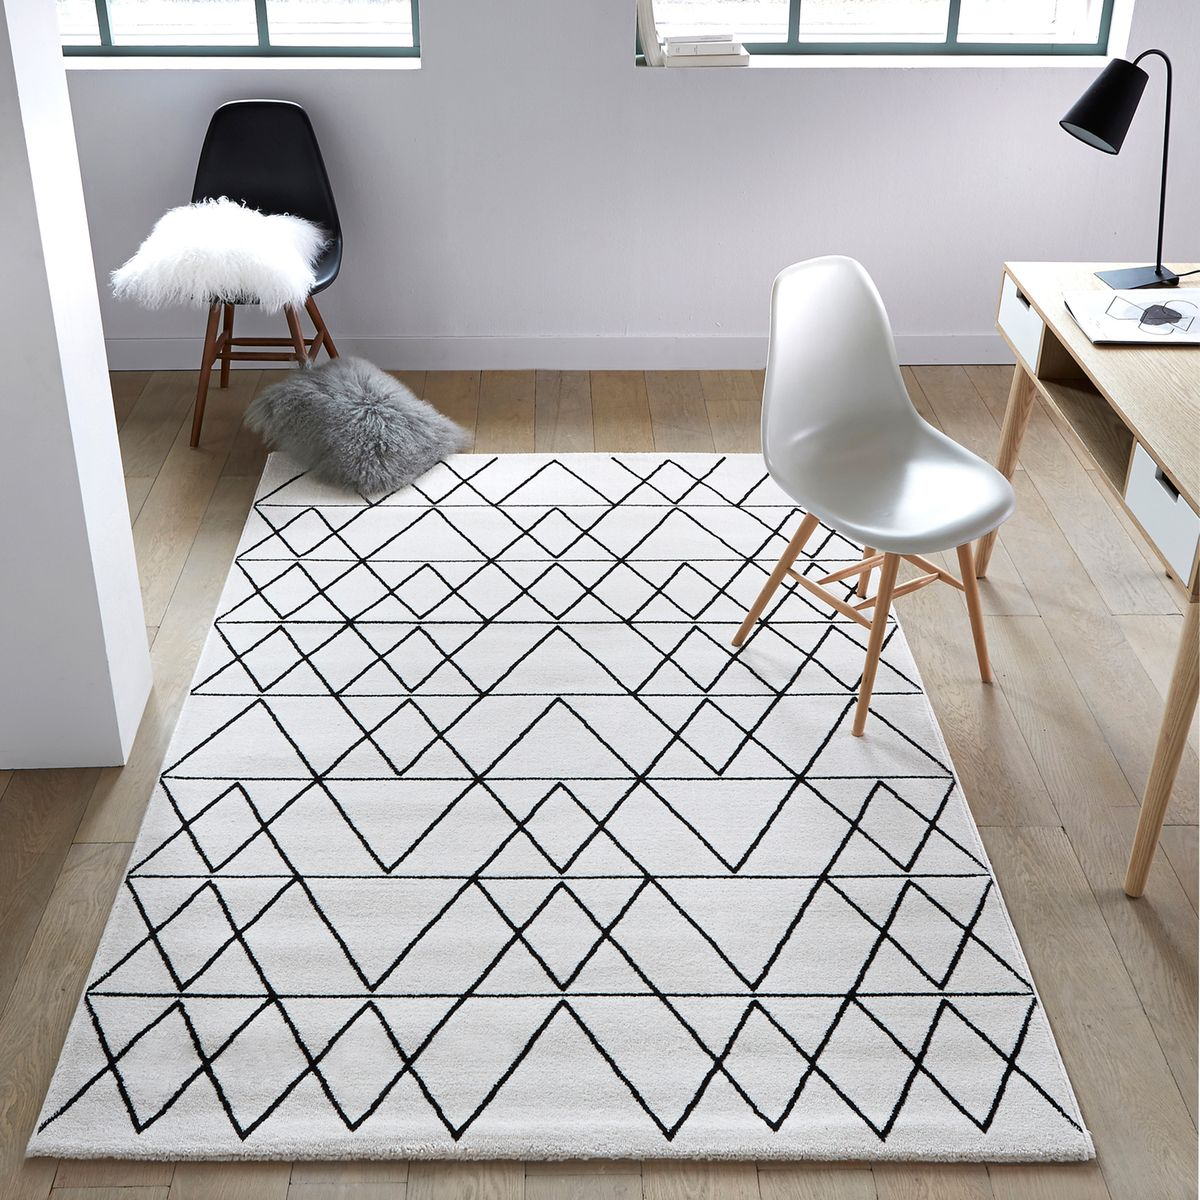 Diy 35 un tapis g om trique pierre papier ciseaux for Ikea tapis salon